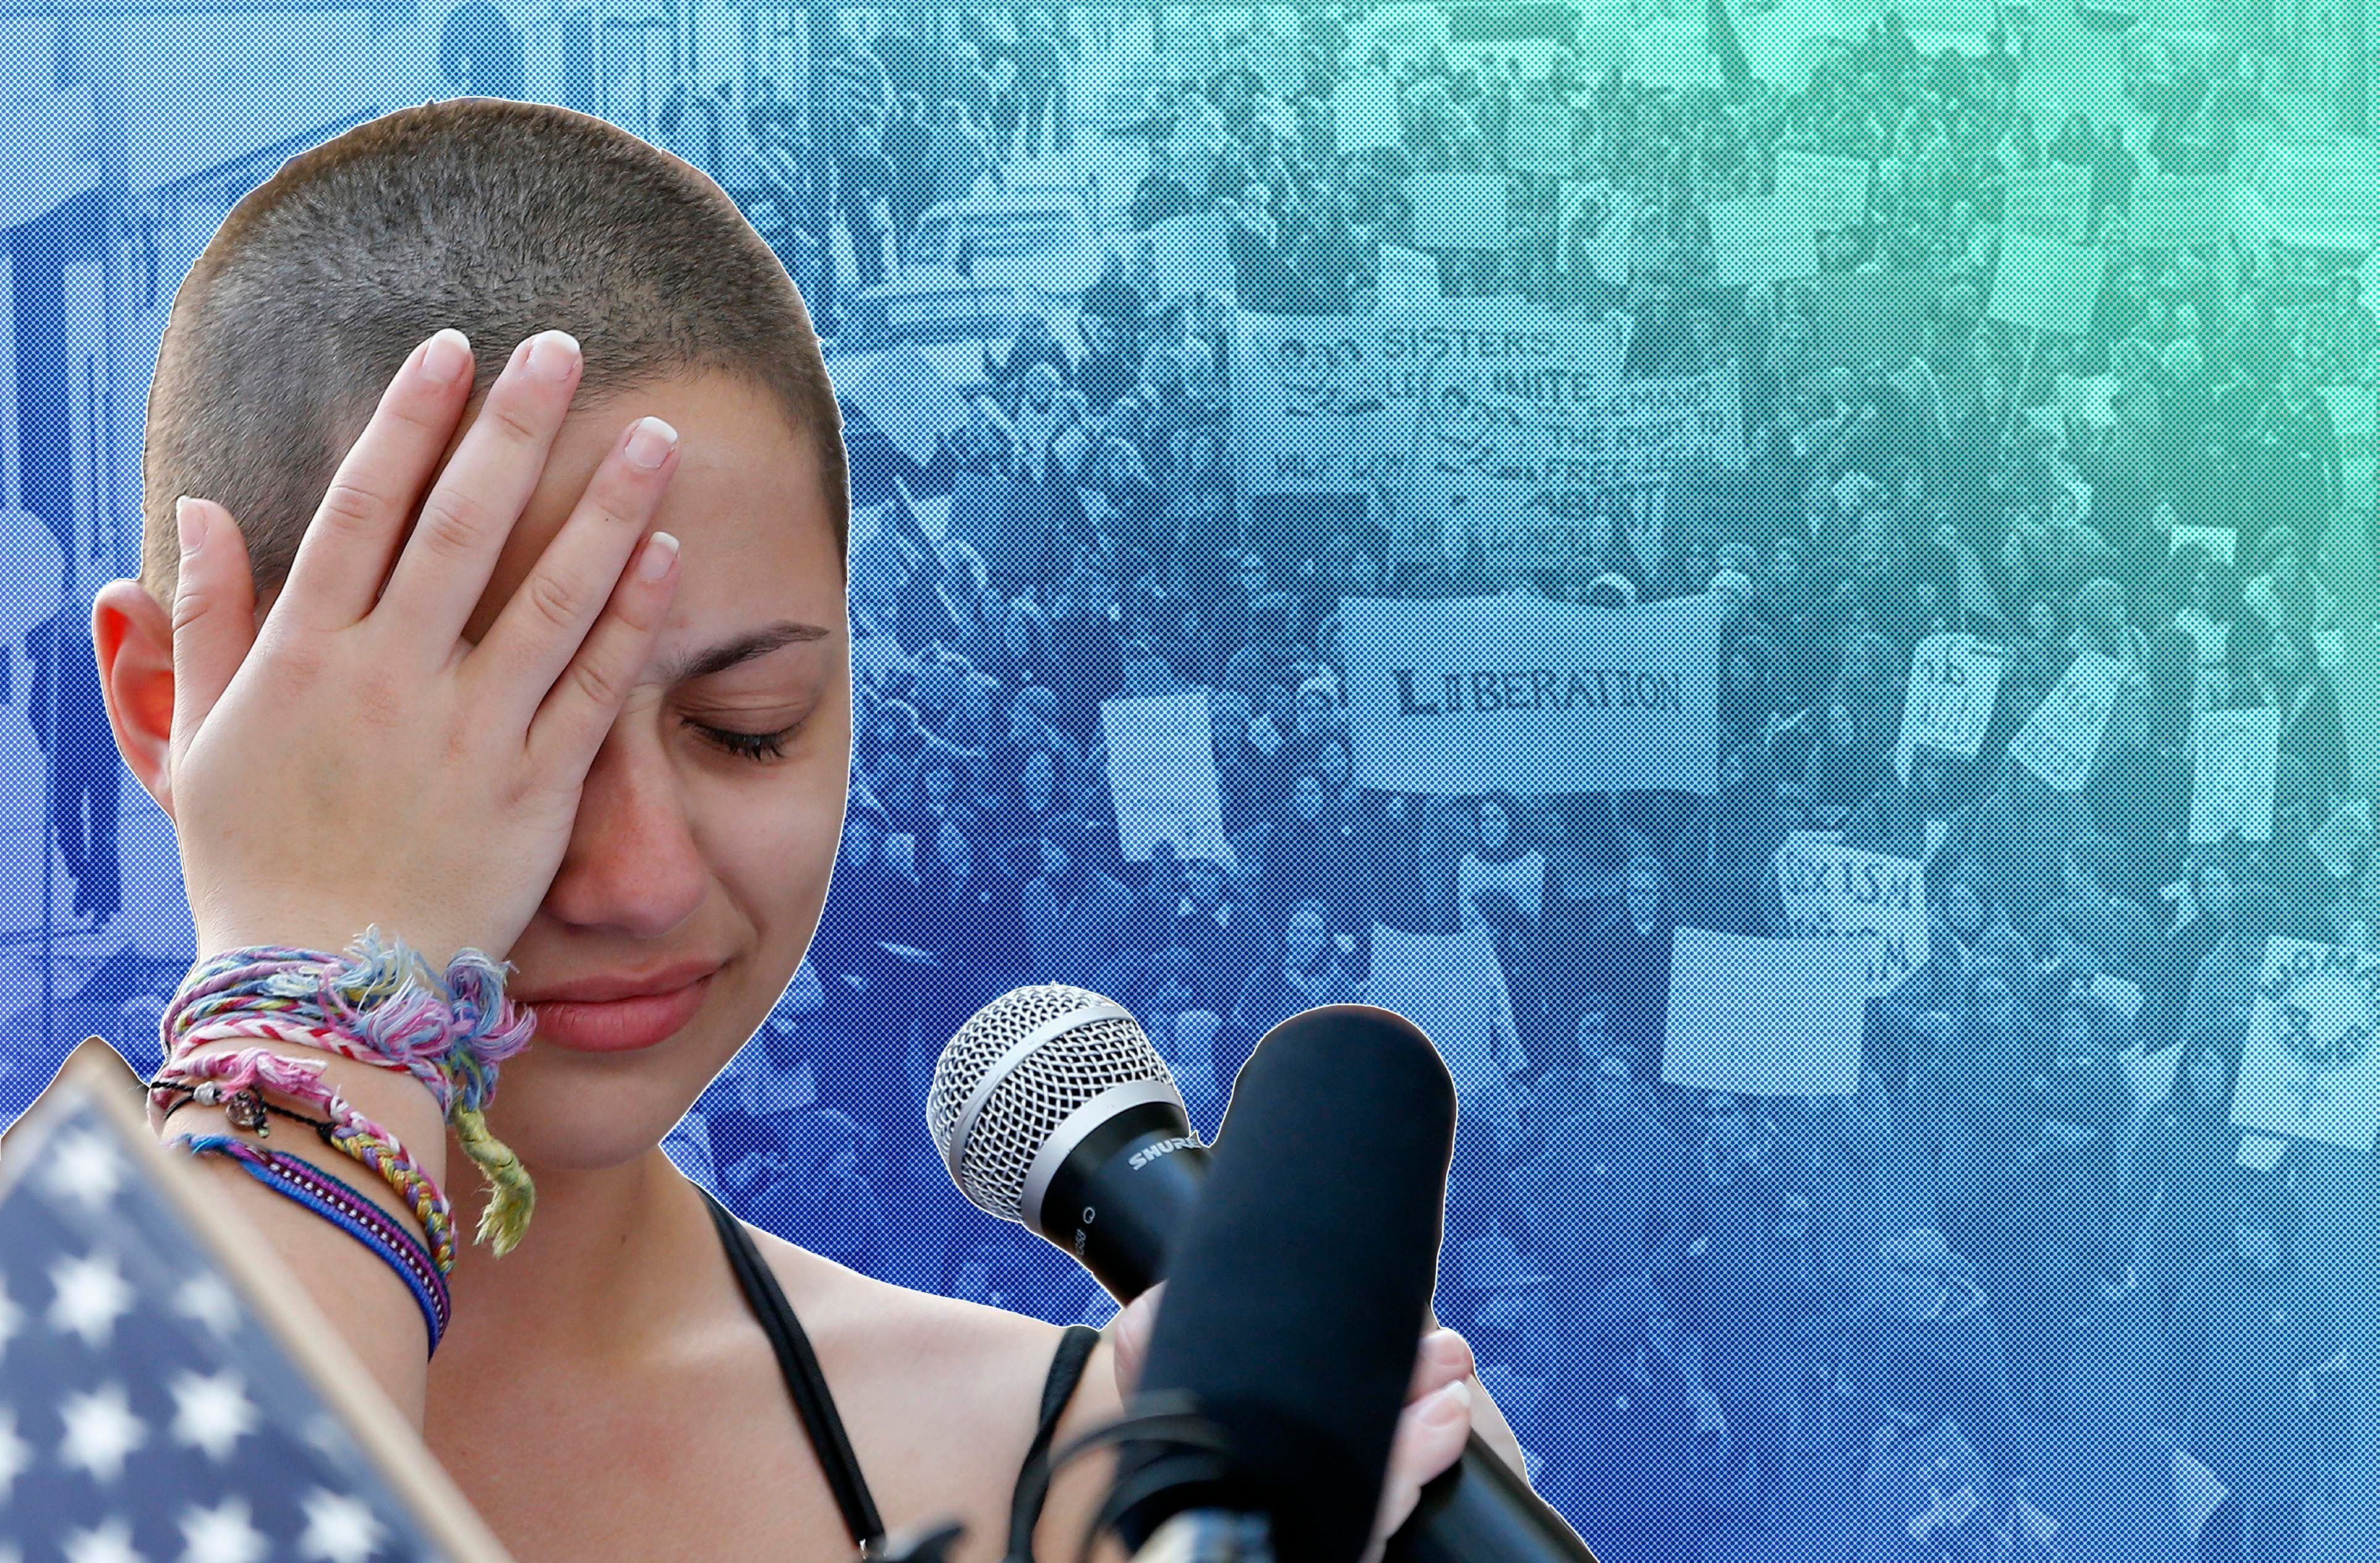 """TOPSHOT - Marjory Stoneman Douglas High School student Emma Gonzalez reacts during her speech at a rally for gun control at the Broward County Federal Courthouse in Fort Lauderdale, Florida on February 17, 2018.A student survivor of the Parkland school shooting called out US President Donald Trump on Saturday over his ties to the powerful National Rifle Association, in a poignant address to an anti-gun rally in Florida. """"To every politician taking donations from the NRA, shame on you!"""" said Emma Gonzalez, assailing Trump over the multi-million-dollar support his campaign received from the gun lobby -- and prompting the crowd to chant in turn: """"Shame on you!""""  / AFP PHOTO / RHONA WISE        (Photo credit should read RHONA WISE/AFP/Getty Images)"""